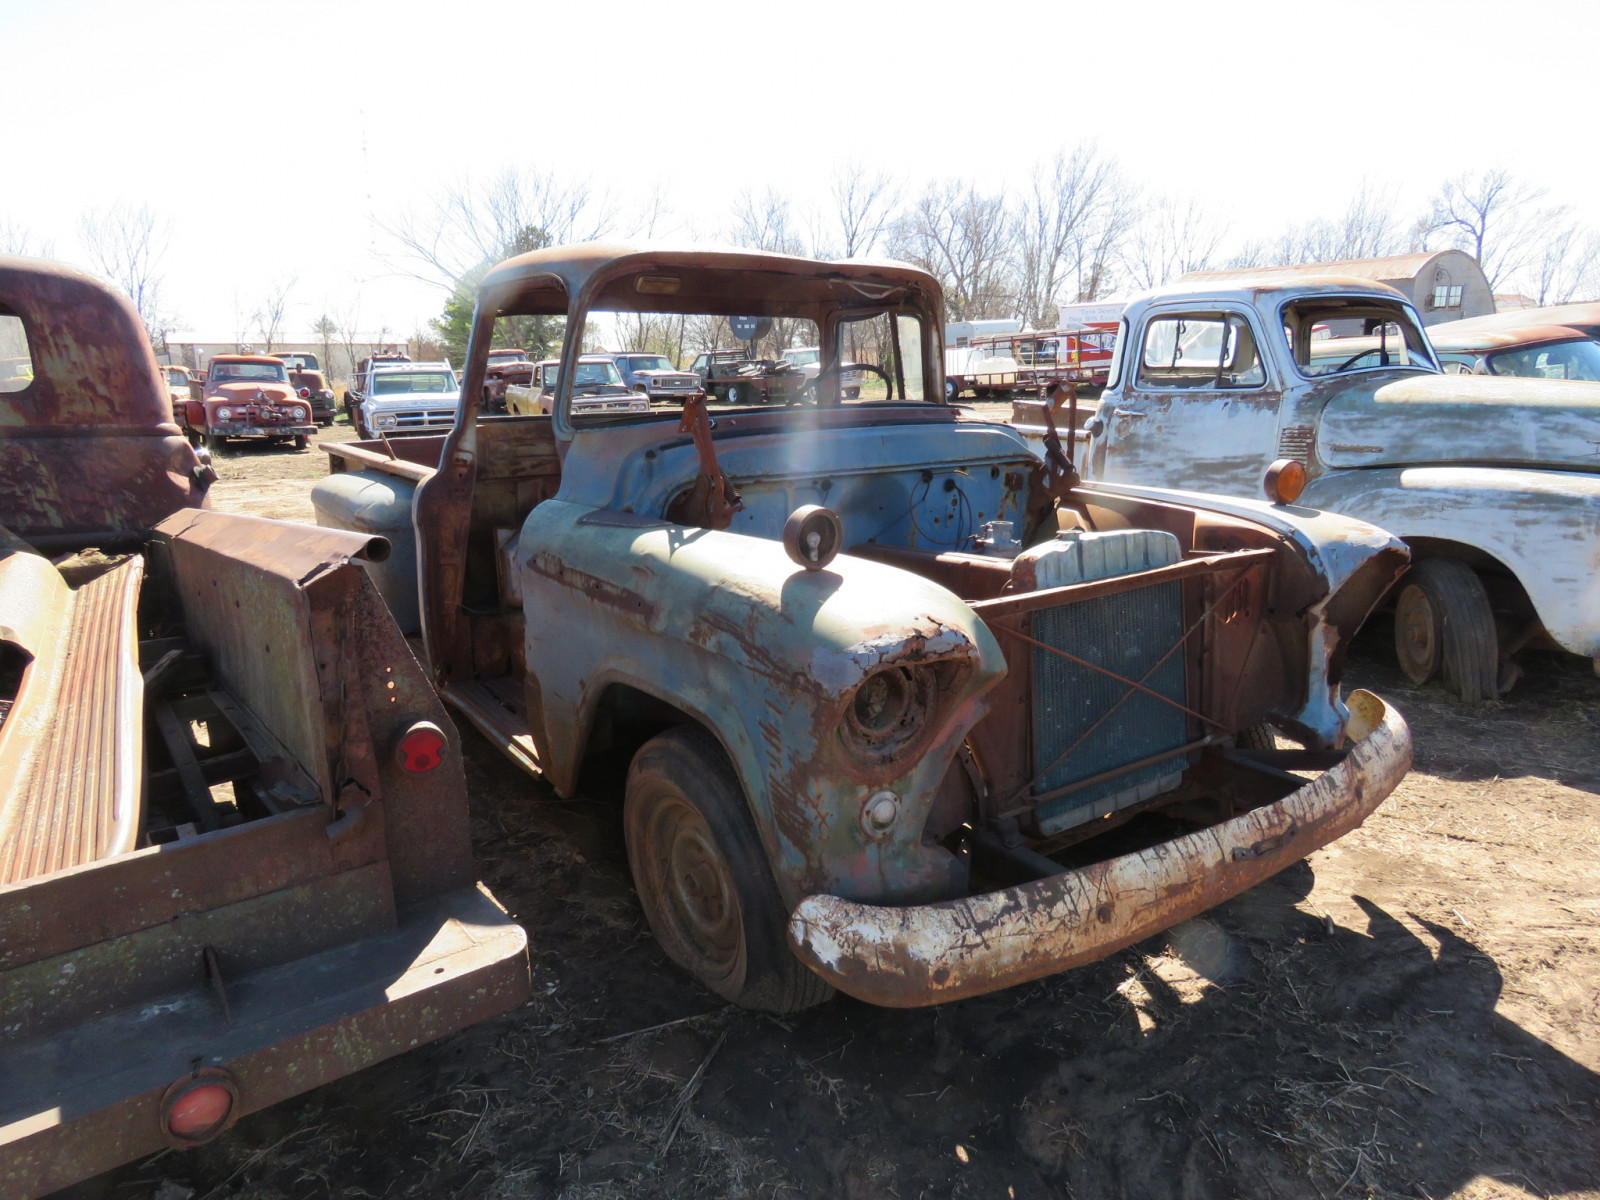 1955/6 Chevrolet Pickup for Parts - Image 1